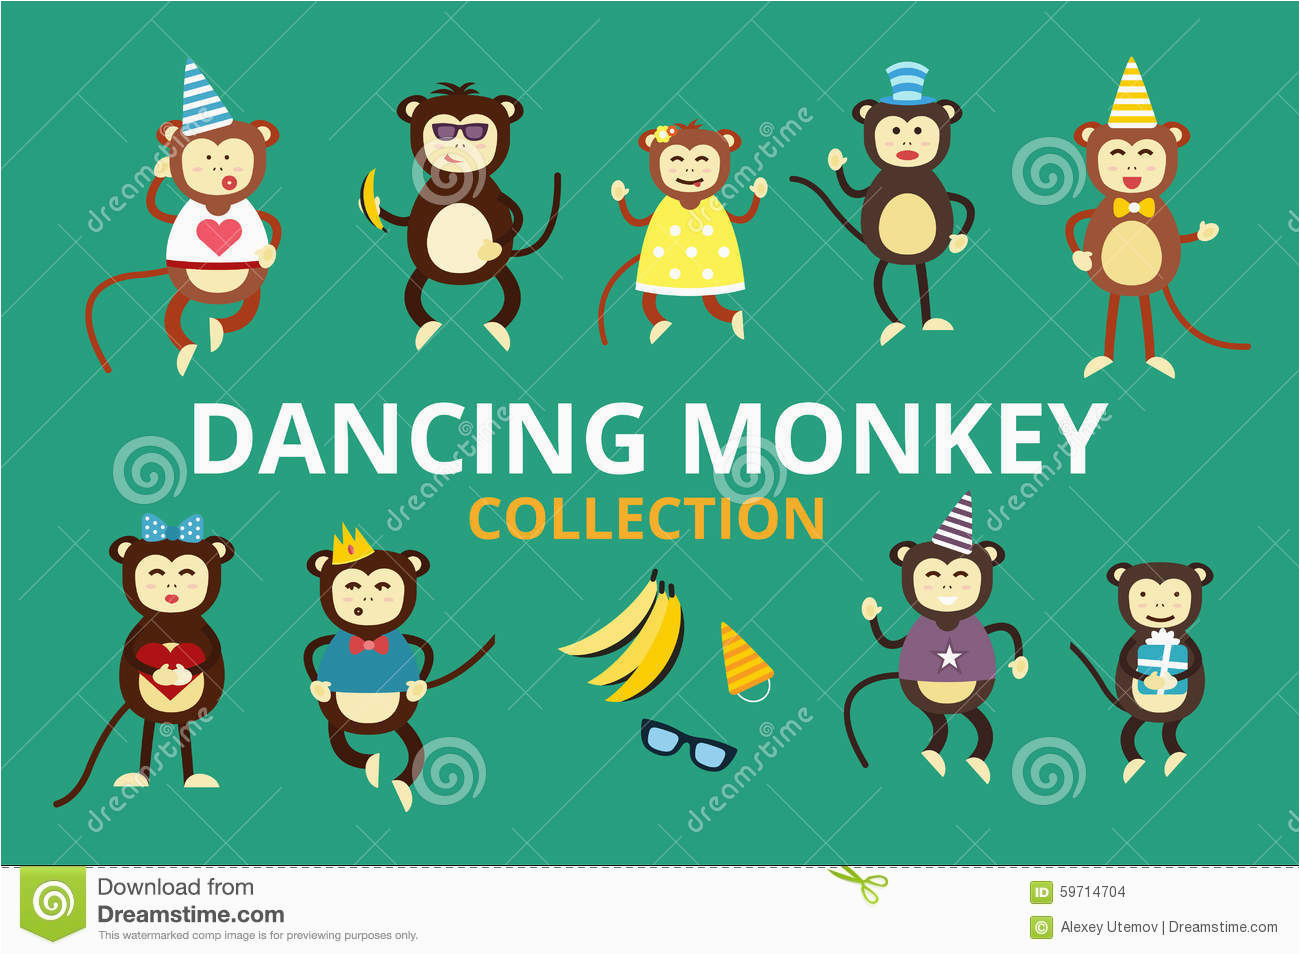 stock illustration happy cartoon vector monkey dancing party birthday background dance face hats banana jump image59714704